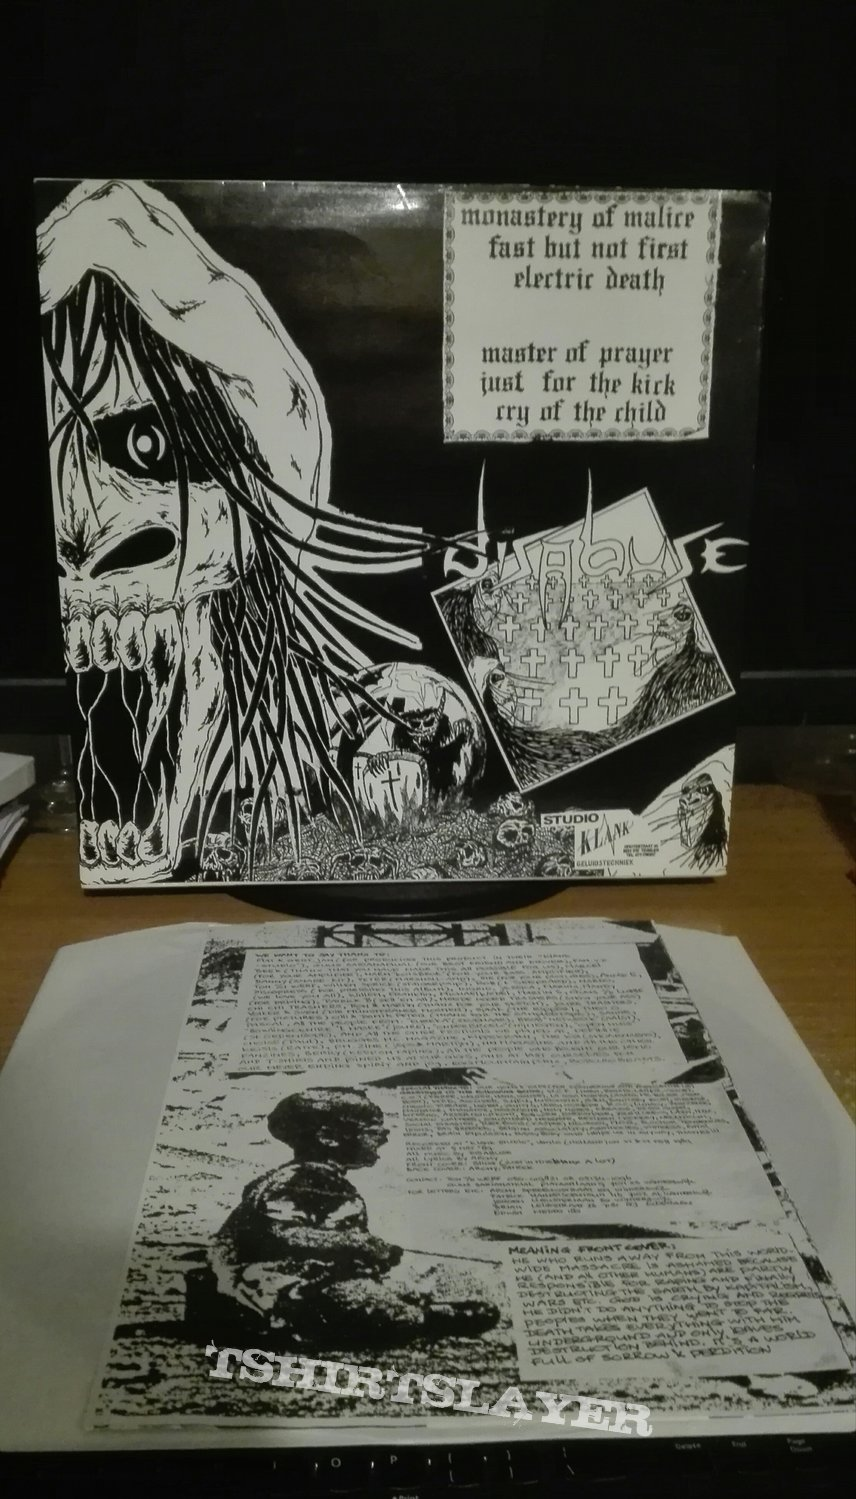 Disabuse- Sorrow and perdition lp